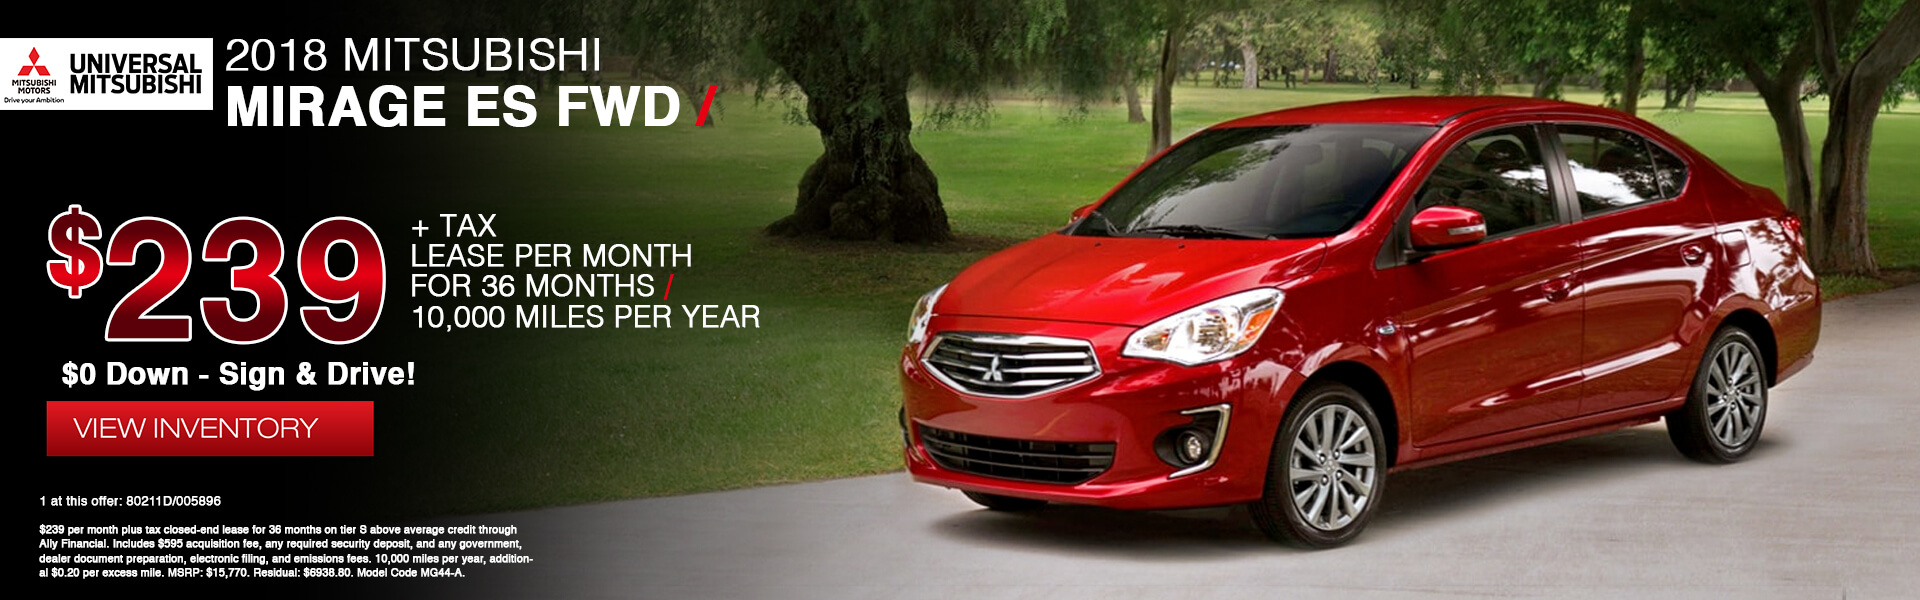 Mitsubishi Mirage $239 Lease